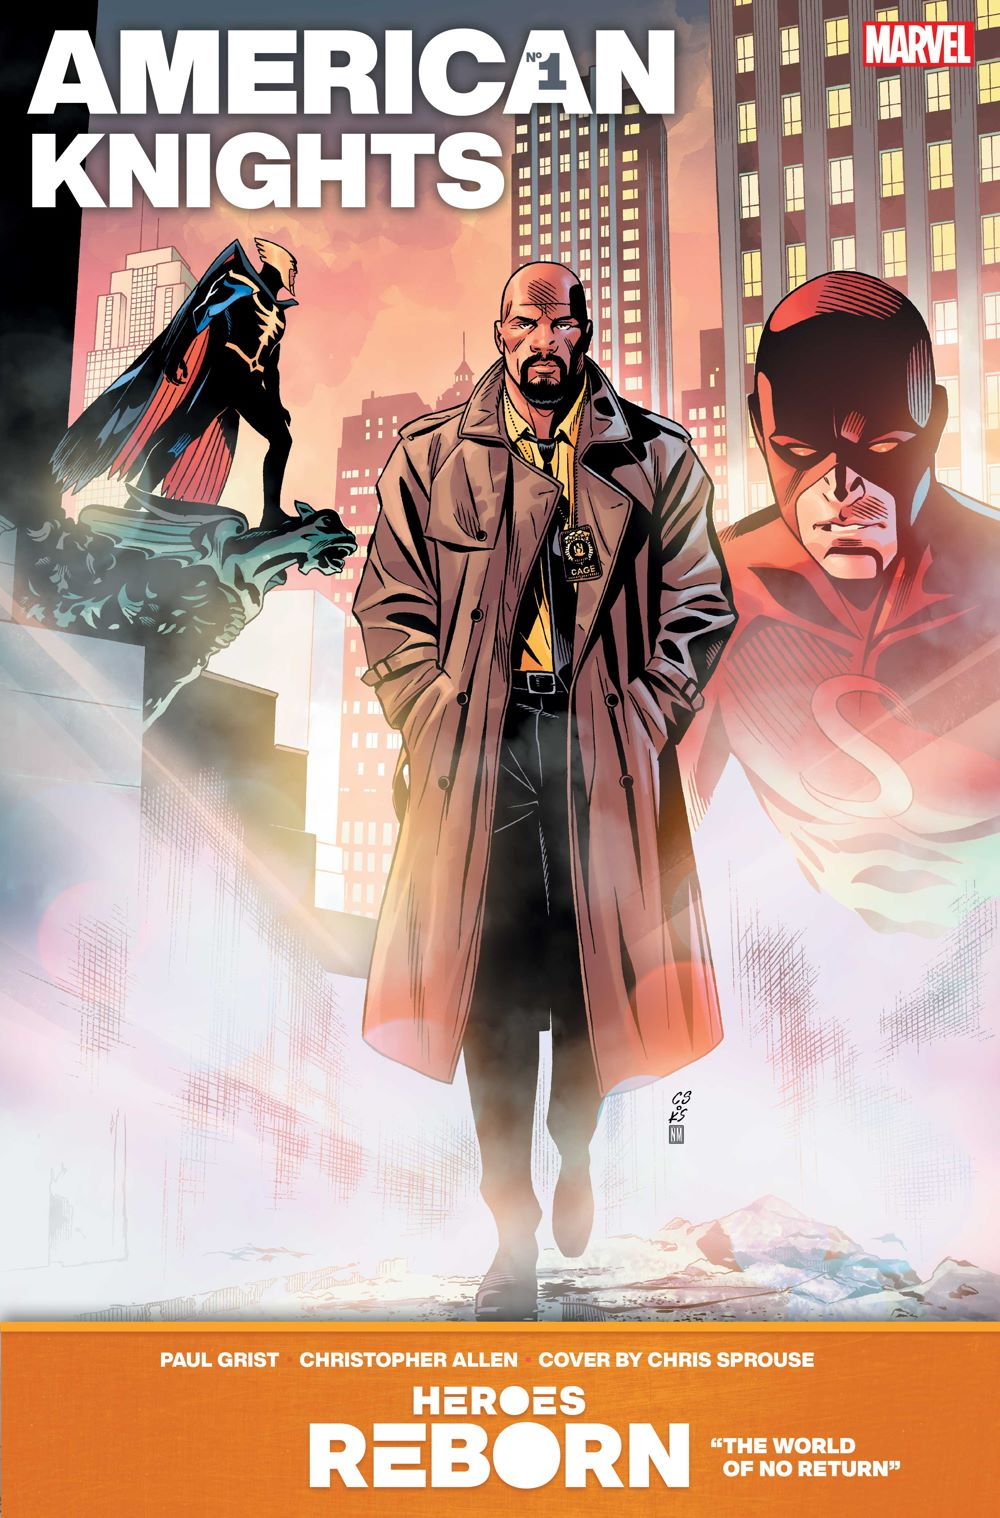 AMERICAN_KNIGHTS Even more HEROES REBORN covers are revealed